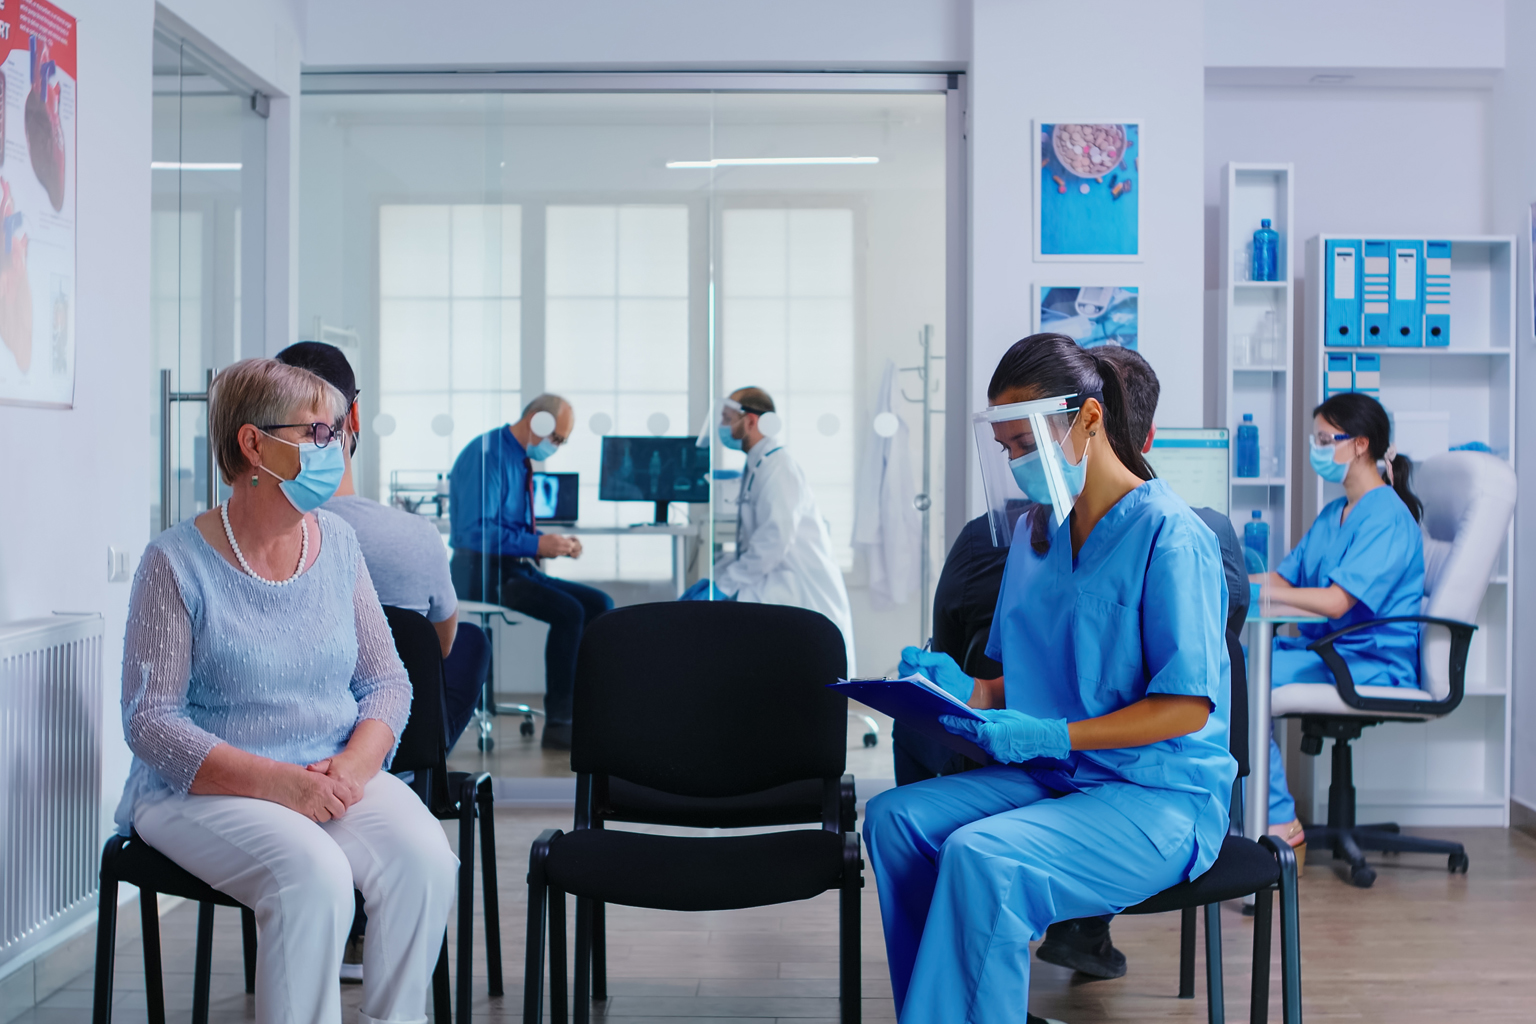 Busy healthcare office with socially distanced workers and patients